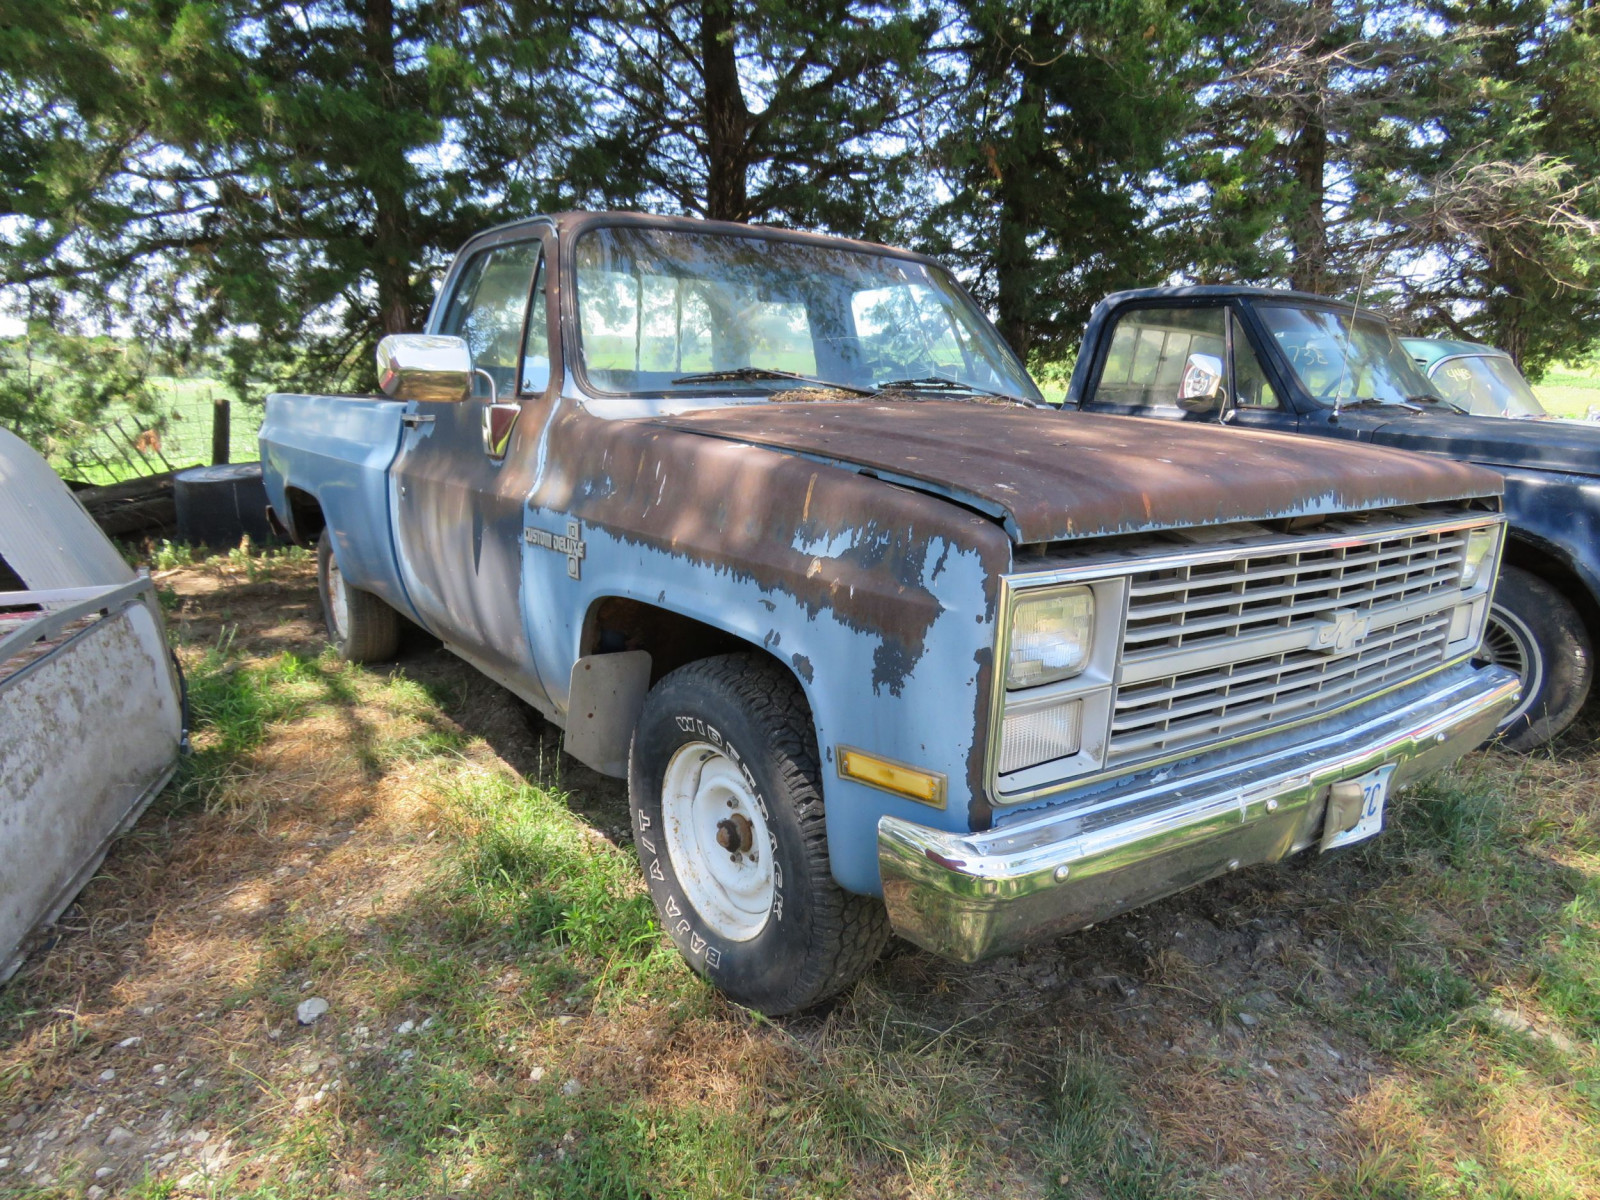 1984 Chevrolet Custom Deluxe 10 Pickup for Restore - Image 3